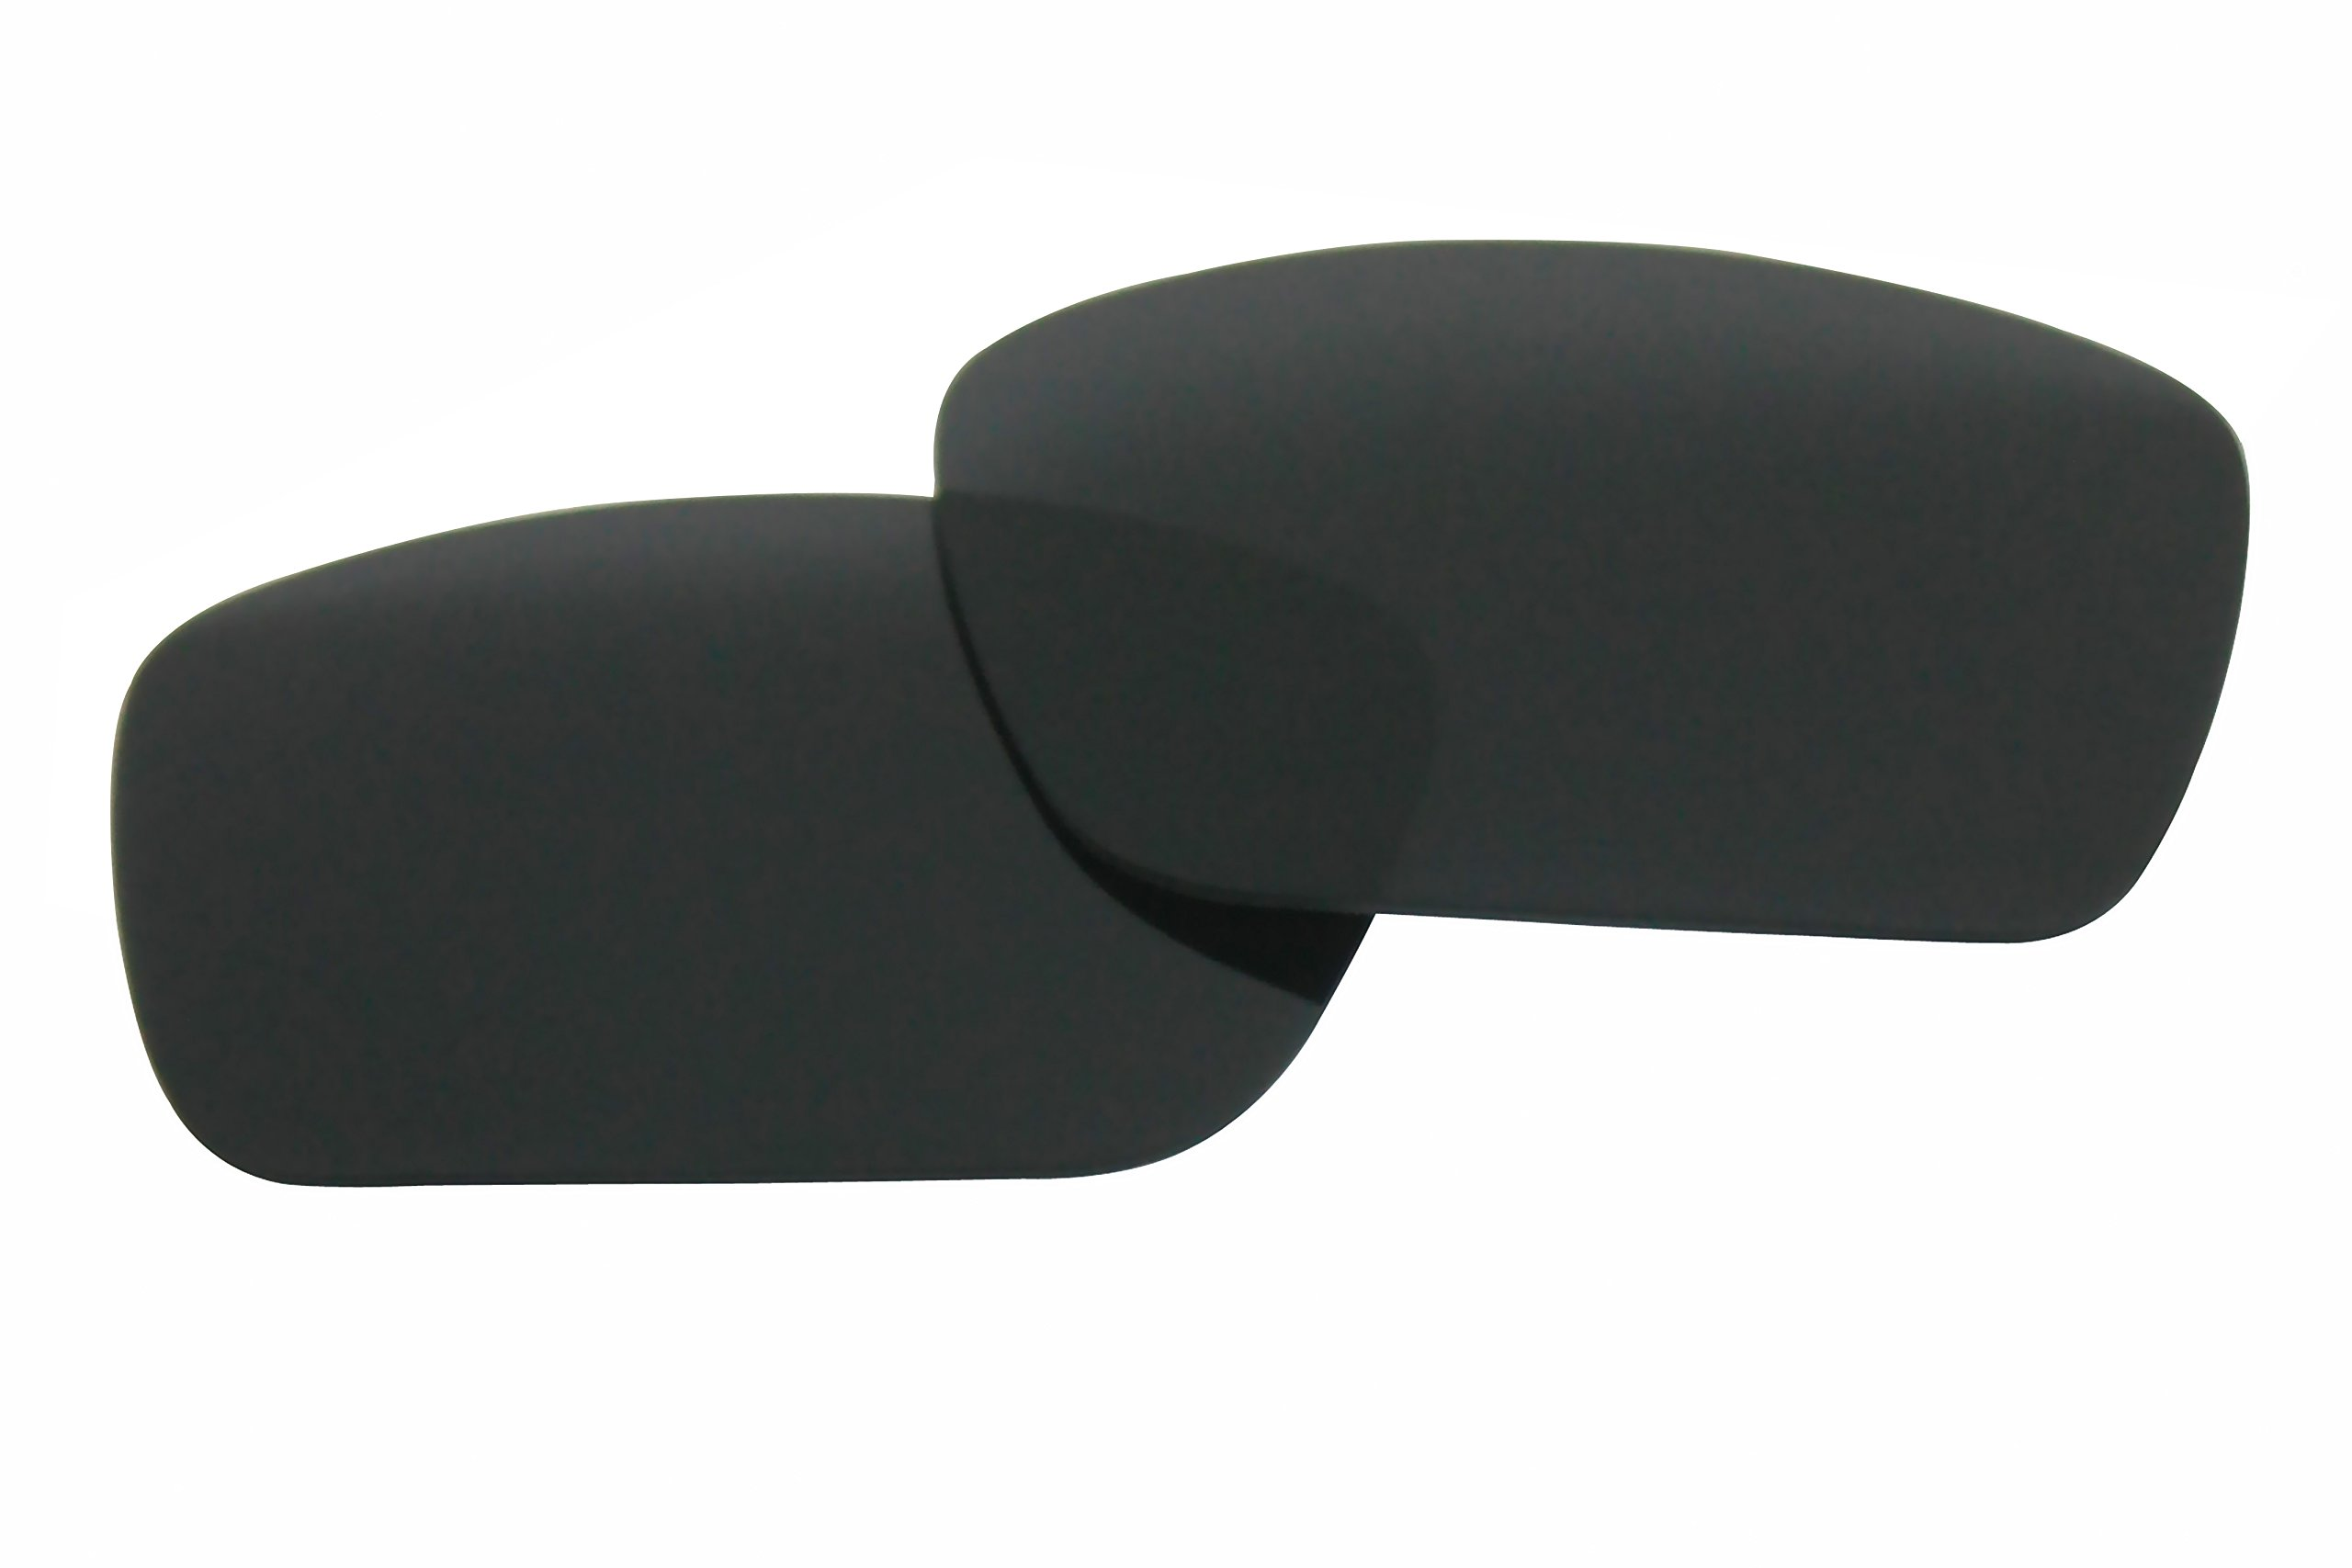 Polarized Replacement Sunglasses Lenses for Oakley Fuel Cell with UV Protection(Black) by C.D